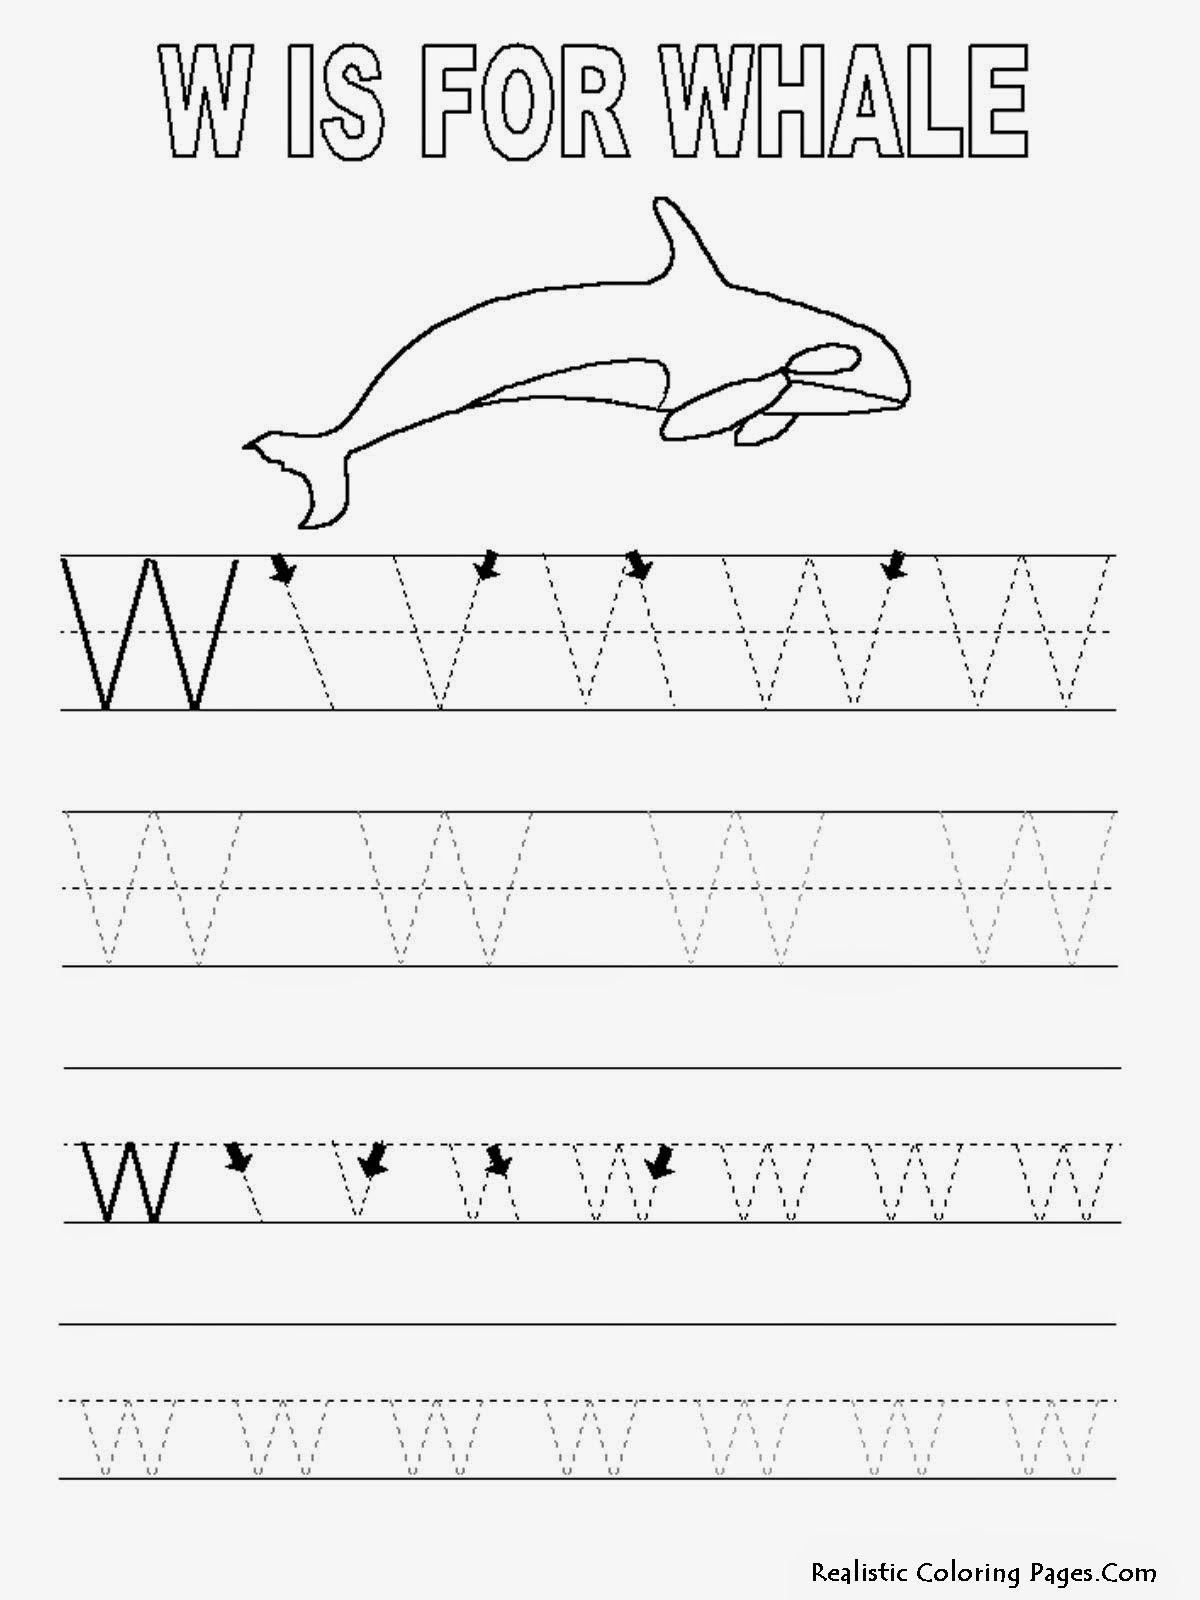 W Is For Whale Coloring Page